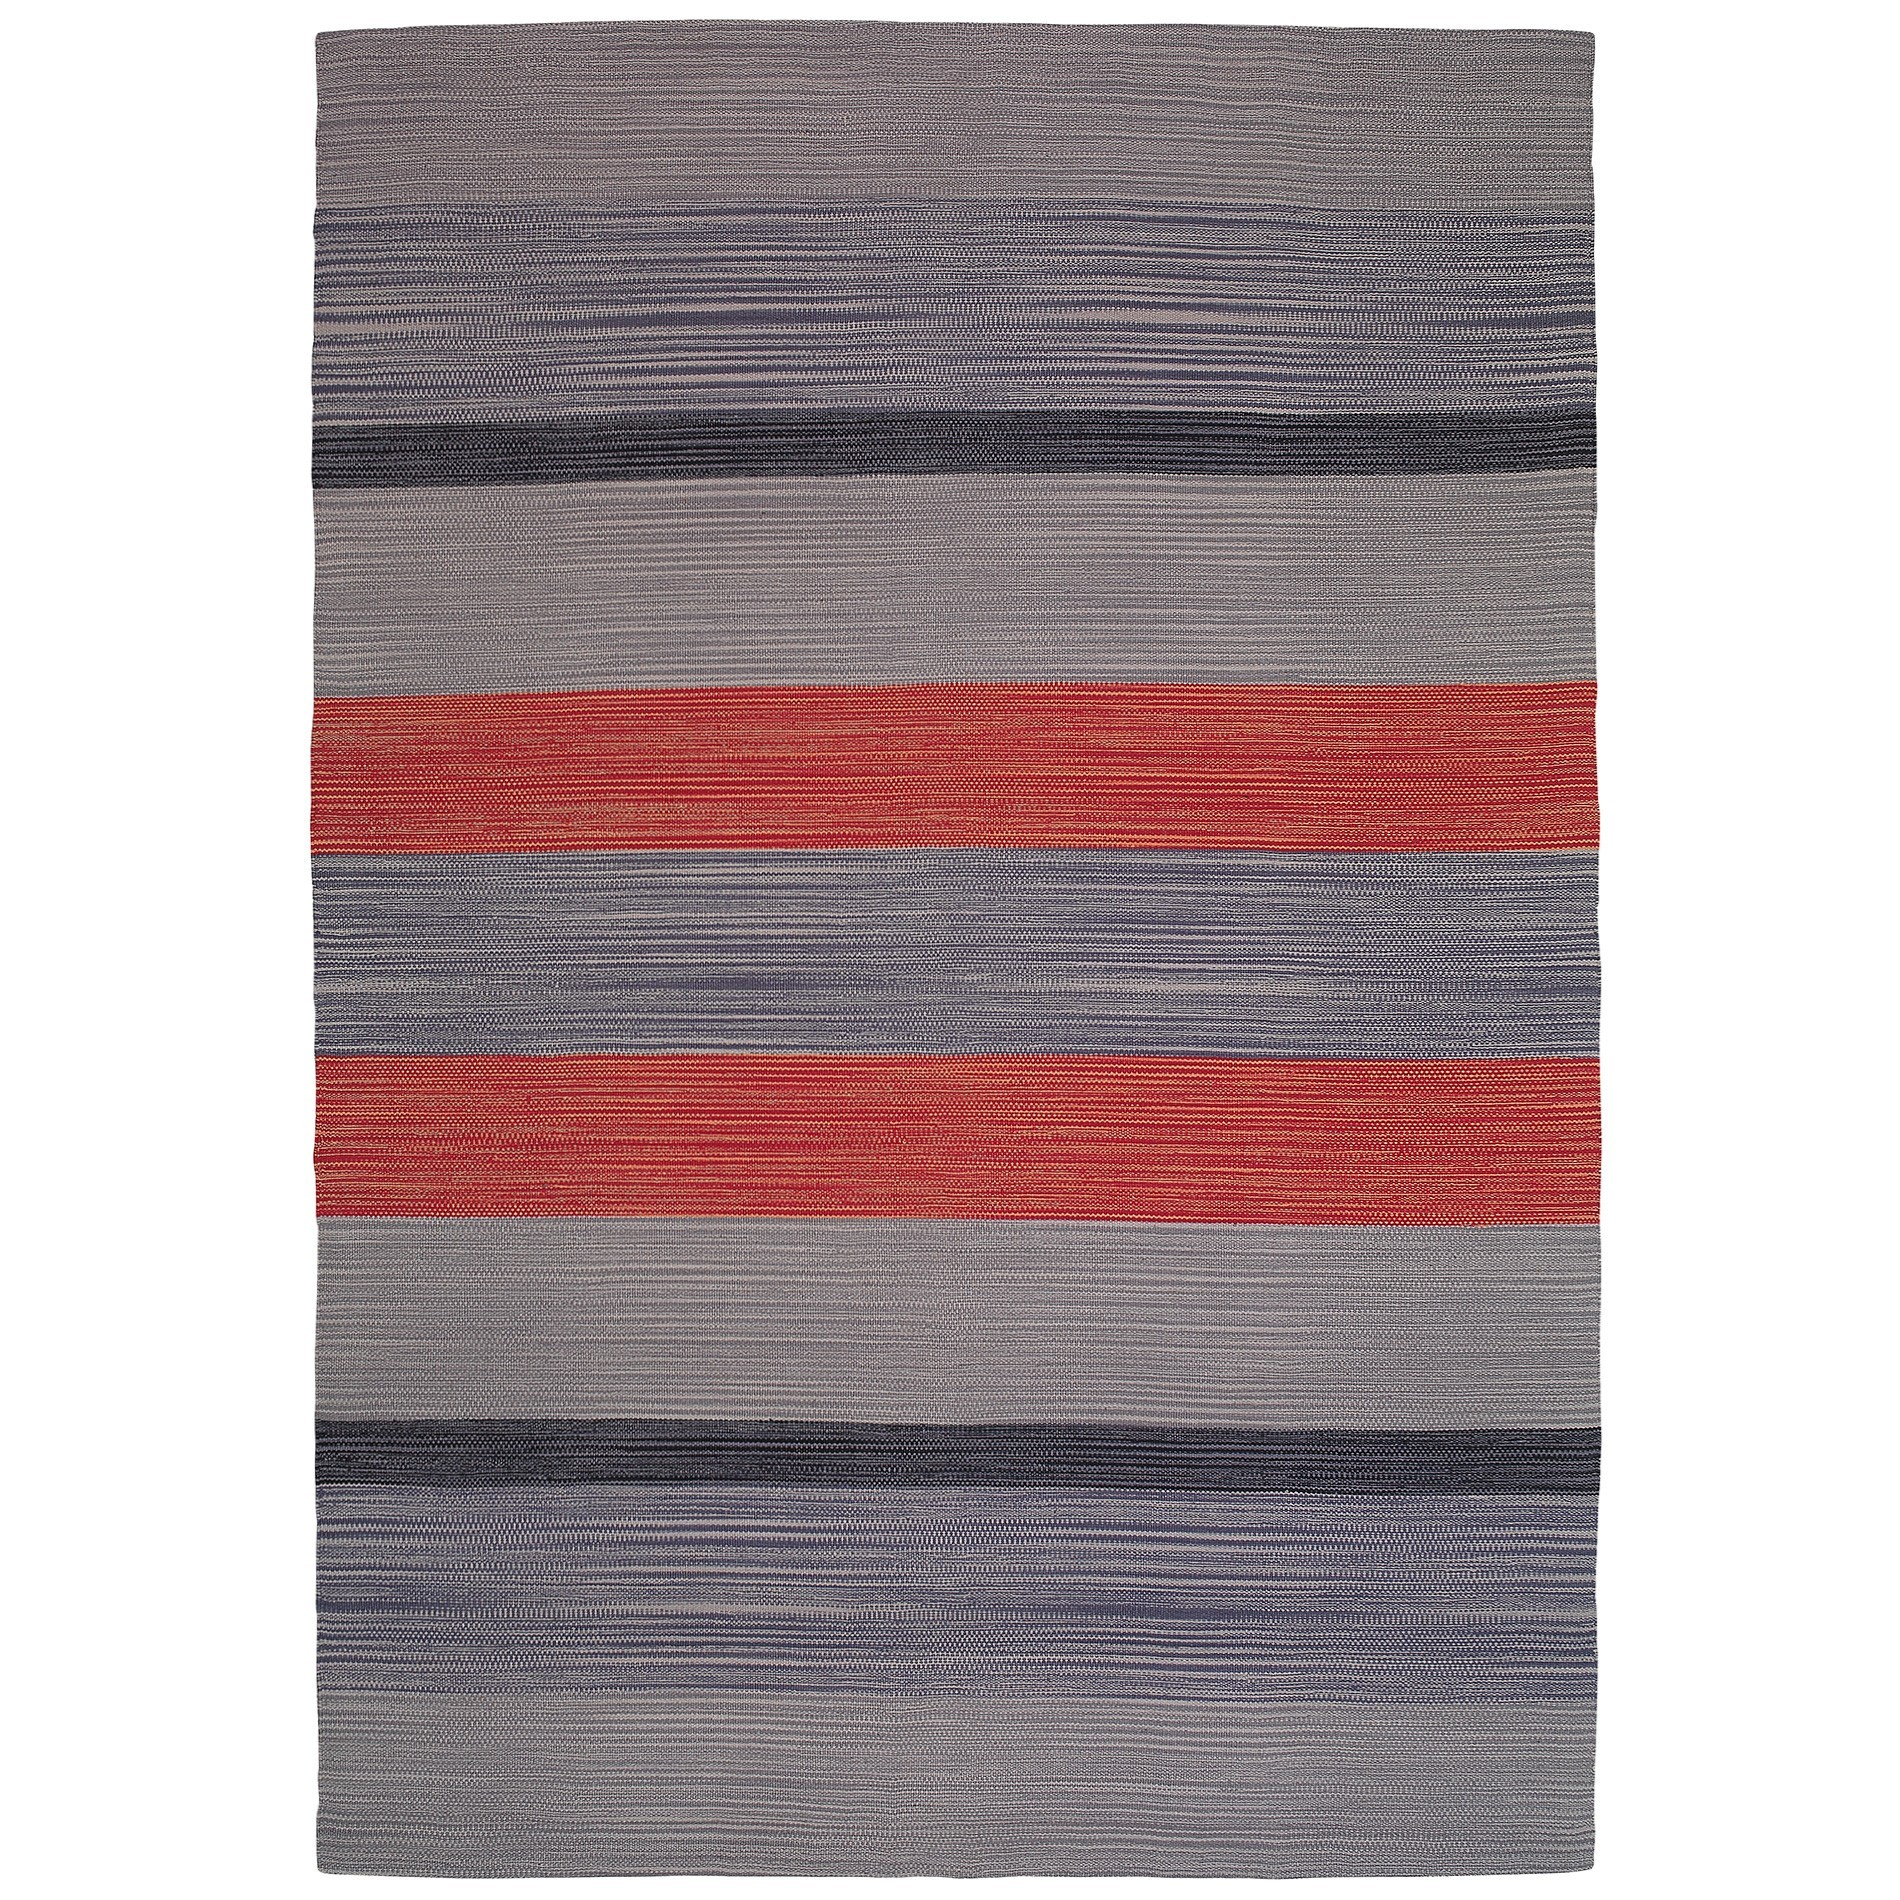 Oxford No.797 Cotton Modern Rug, 290x200cm, Grey / Red